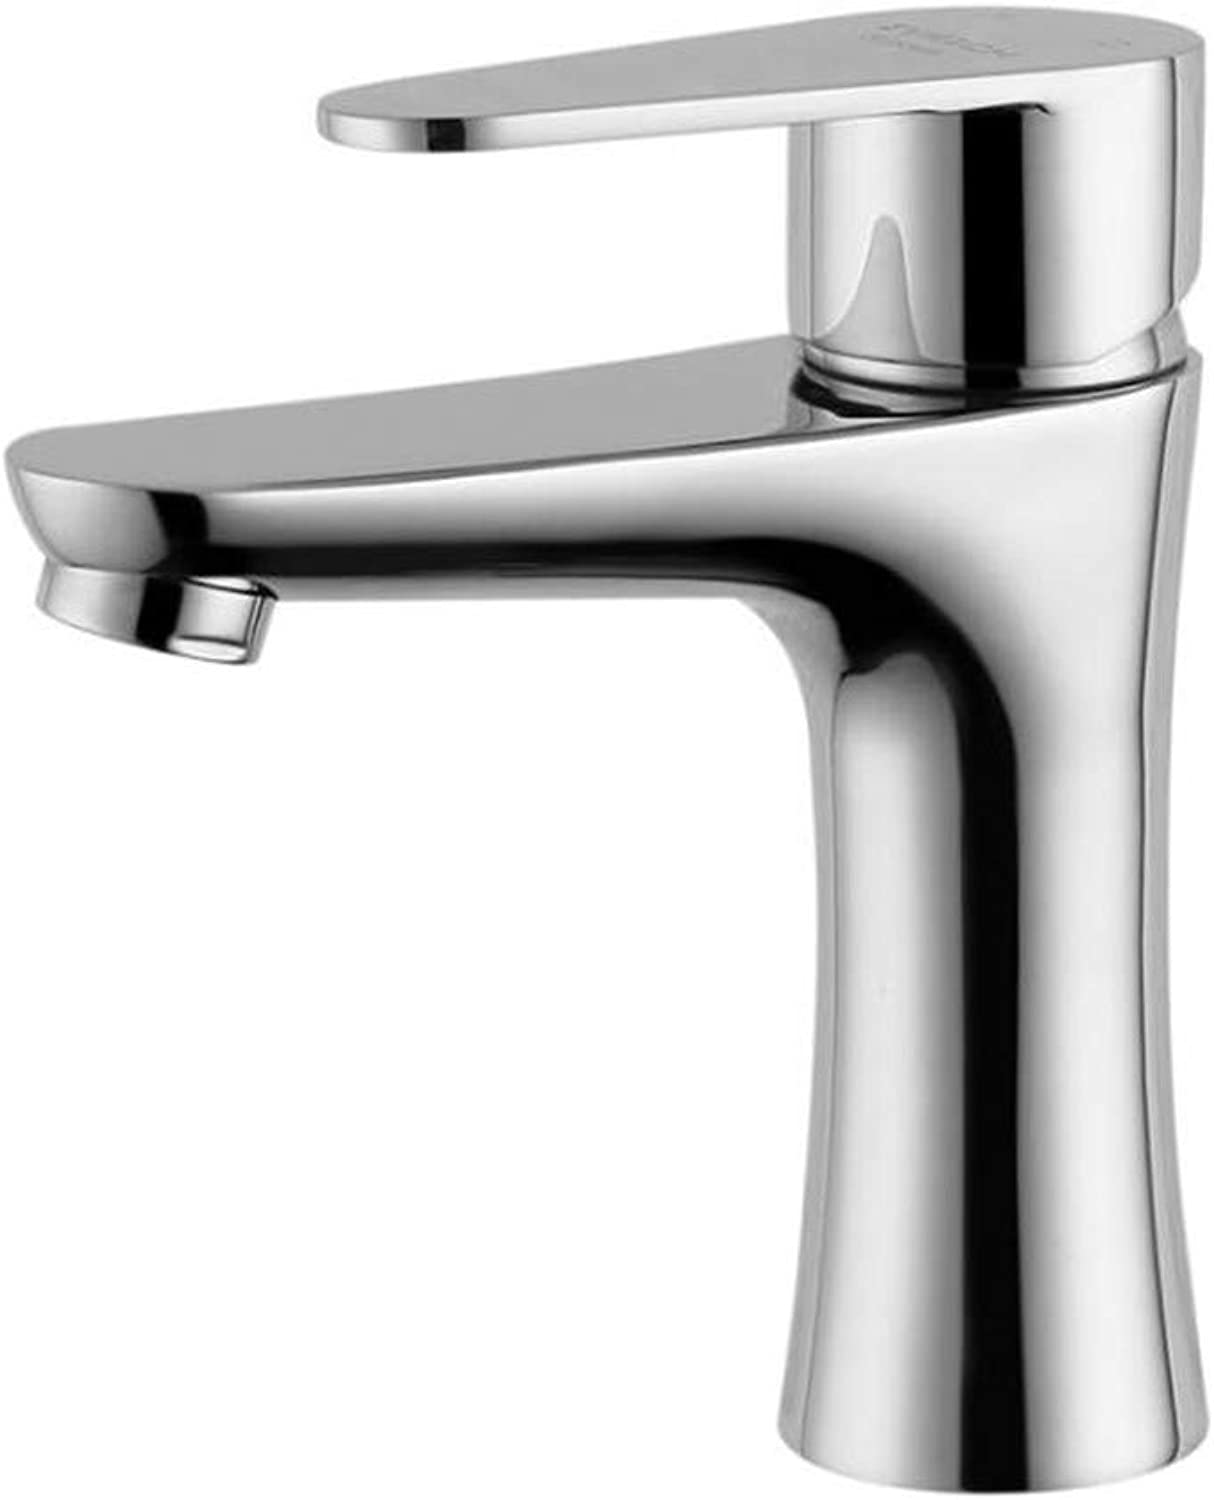 Bathroom Sink Basin Lever Mixer Tap 304 Stainless Steel Mirror Short Type Cold and Hot Pot Dragon Single Hand